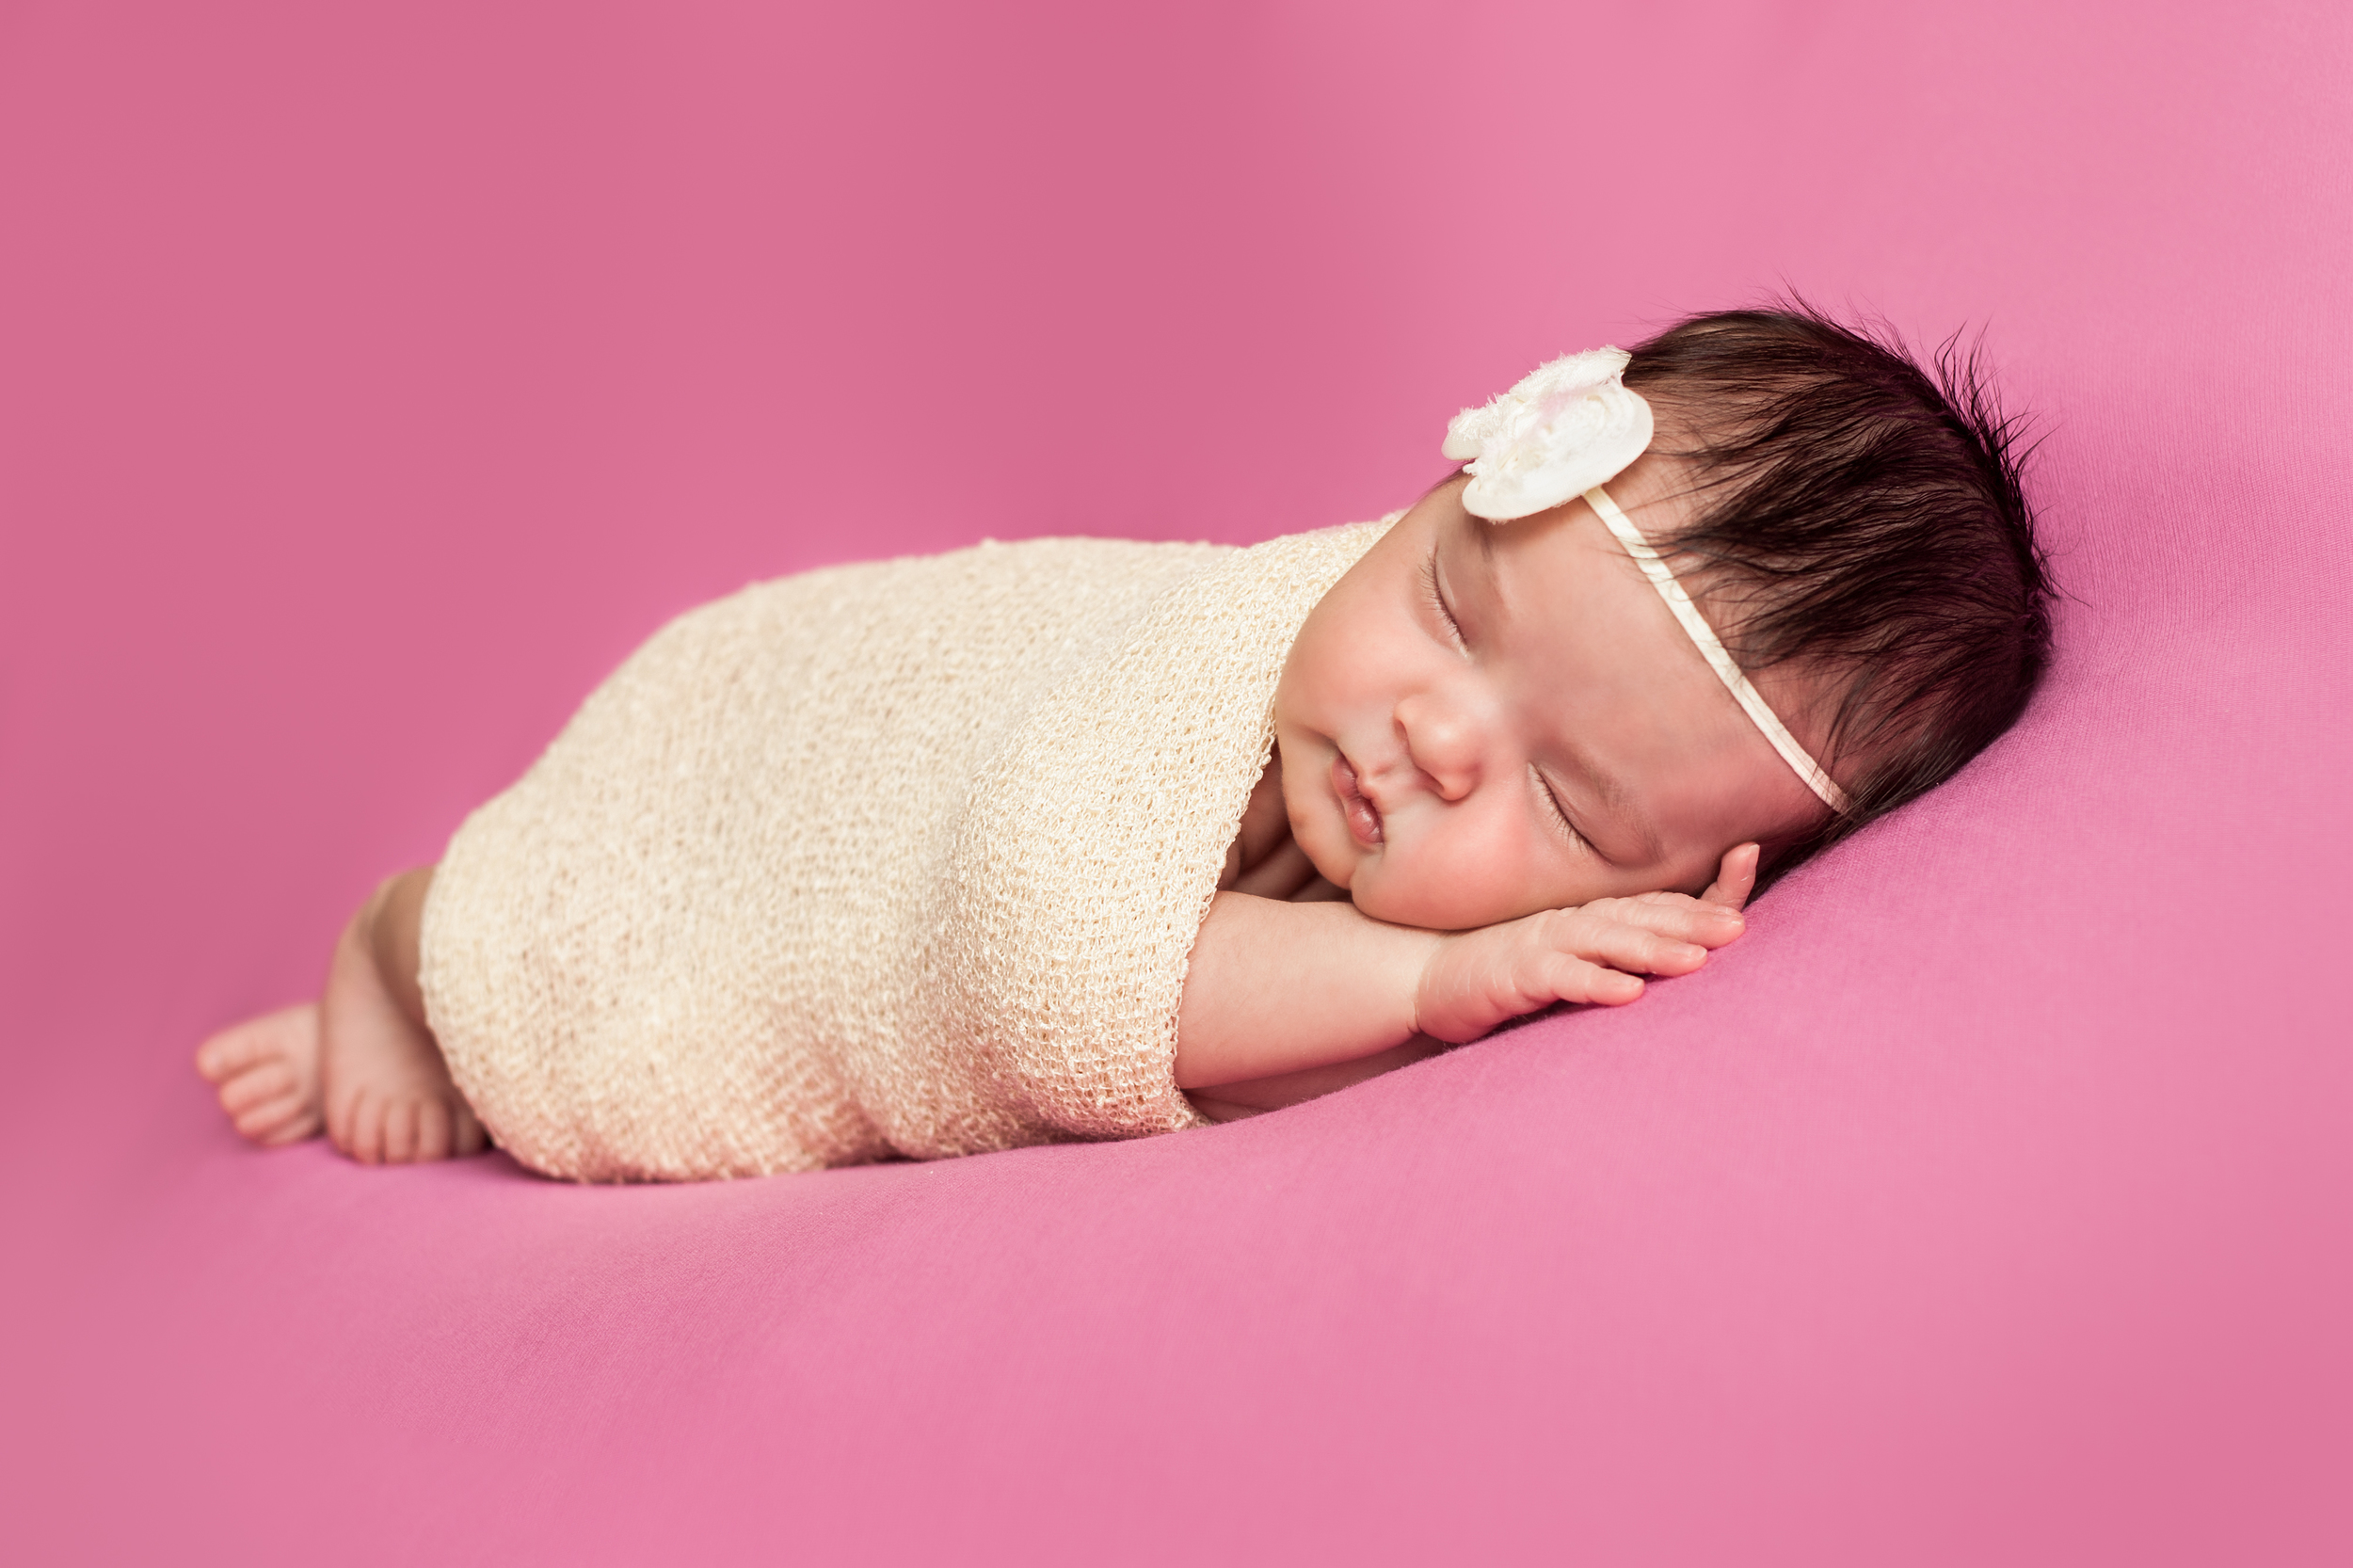 Newborn baby girl wrapped in creme stretch wrap with creme bow headband on pink background, Westchester County, NY Newborn Photographer Amanda Noelle Photography.